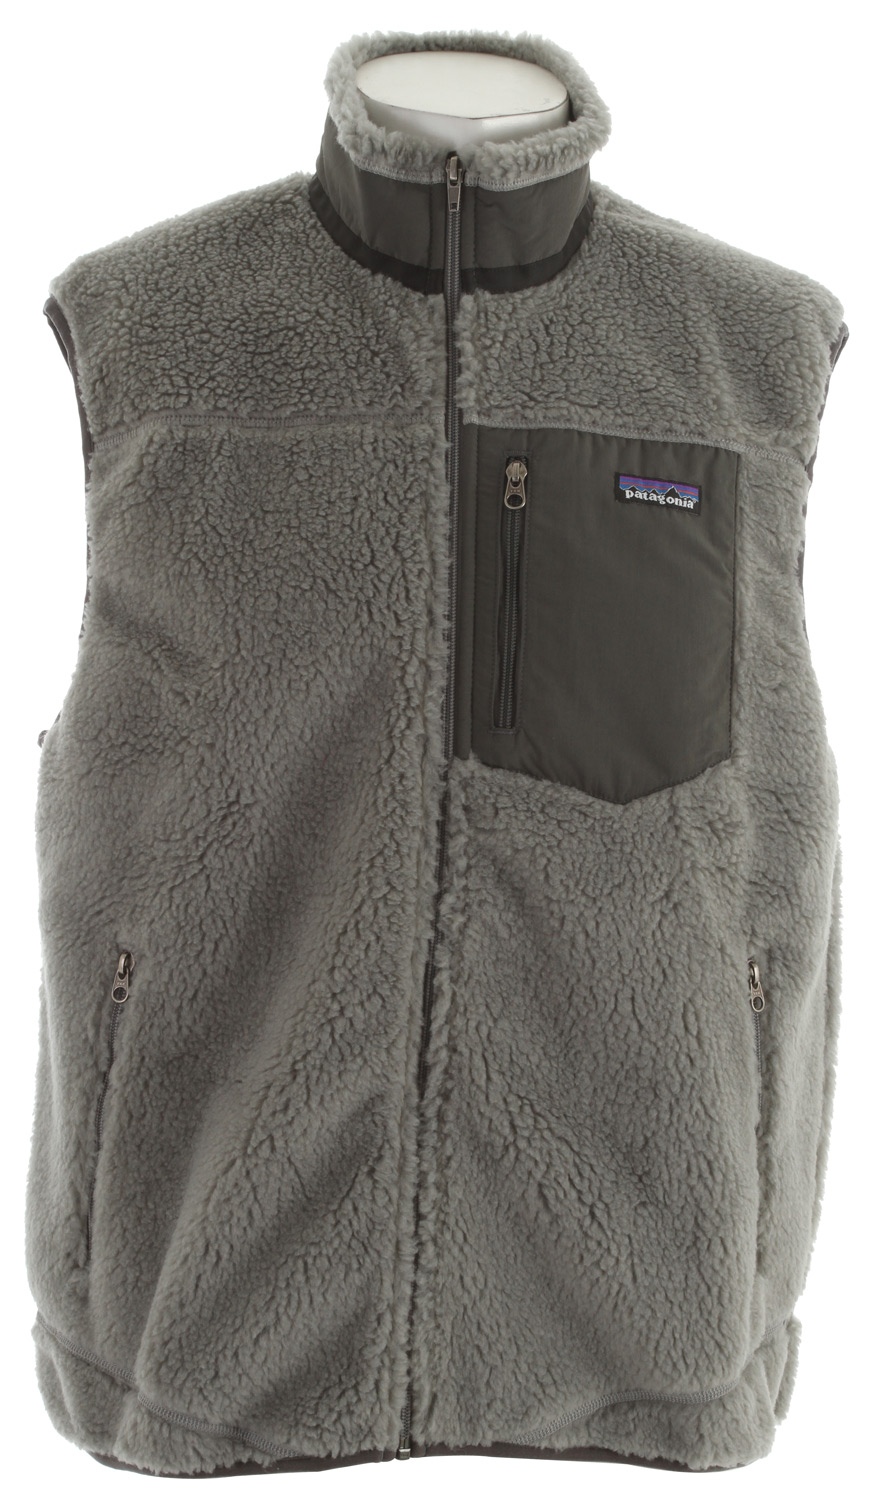 "Whether on its own or under a shell jacket, this windproof, recycled polyester Synchilla fleece vest keeps your core warm. This garment has a Regular Fit With three miles of fence line to mend in a southern Idaho draft, you'd best call a friend who owes you one - then grab the Retro-X. It has a windproof barrier sandwiched between a thick 100% polyester pile (86% recycled) on the outside and a moisture-wicking, brushed-mesh lining that keeps warmth in and winter out. The chest pocket, collar and wind flap are Supplex nylon, and the side pockets are lined with brushed-polyester mesh for comfort.Key Features of the Patagonia Classic Retro X Vest: Windproof membrane bonded between a recycled-polyester fleece exterior and moisture-wicking, brushed polyester-mesh interior Full-zip vest with internal wind flap Zippered pockets: Vertical chest pocket made of Supplex nylon; two handwarmers lined with brushed polyester mesh Hip length 7.5-oz Synchilla 100% polyester (86% recycled) 1/4""-pile. Lining: 100% polyester brushed mesh with a windproof barrier. Trim: 100% Supplex nylon 419 g (14.8 oz) Made in Costa Rica. Recycled Polyester: We recycle used soda bottles, unusable second quality fabrics and worn out garments into polyester fibers to produce many of our clothes. At Patagonia we seek to build the best product and cause no unnecessary harm. That's our mission statement, and it takes many forms. As it applies to making products, we work hard to source materials and use processes that are less harmful to the Earth without compromising quality. Because to us, quality is not only how well a product performs and holds up, but also how it's made. - $139.95"